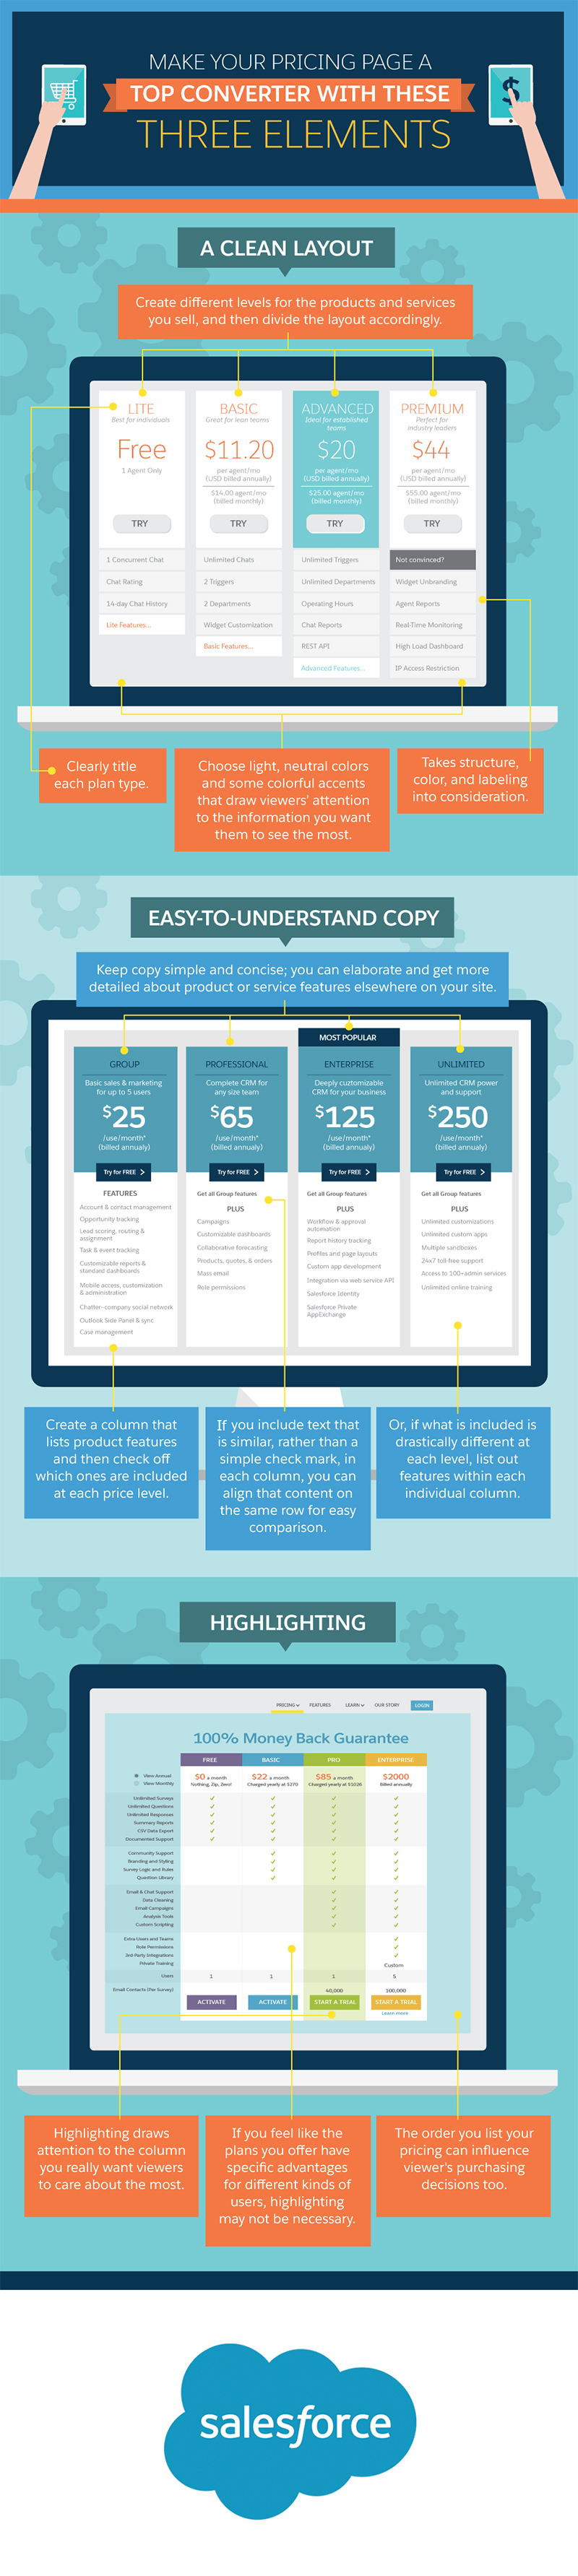 3 Essential Features to Increase Website Enquiries [Infographic]